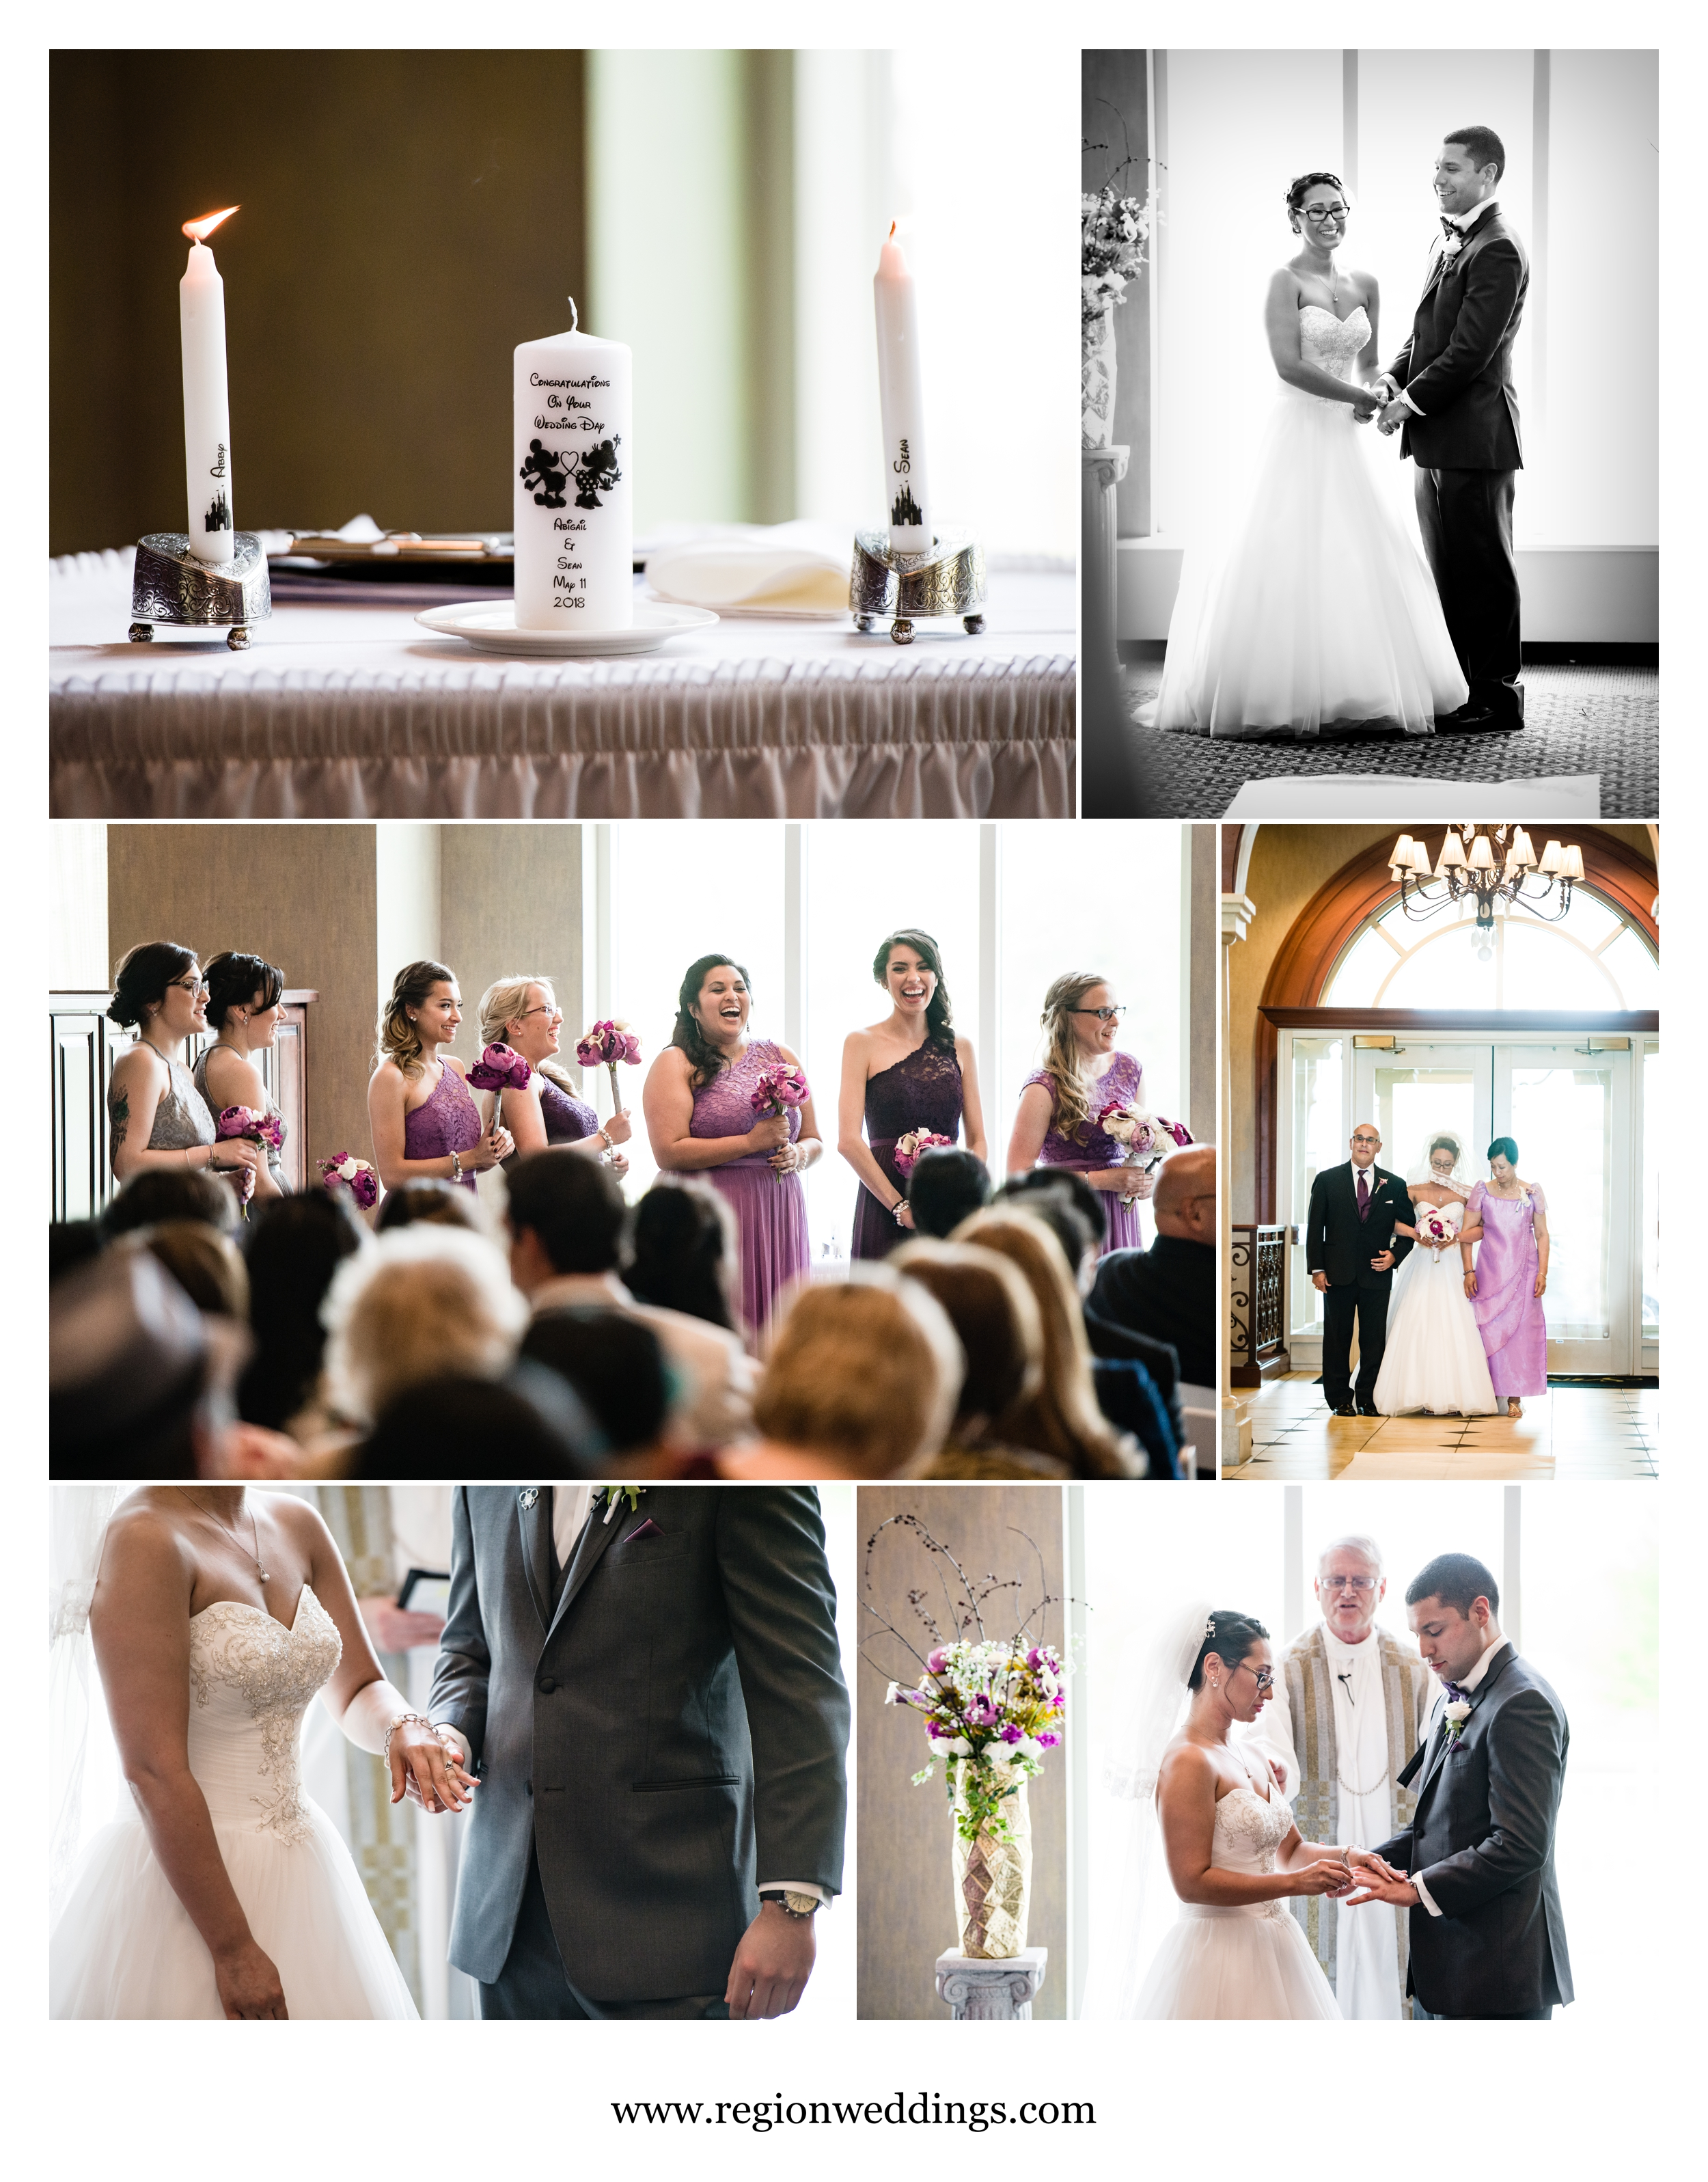 Indoor wedding ceremony at Sand Creek Country Club.